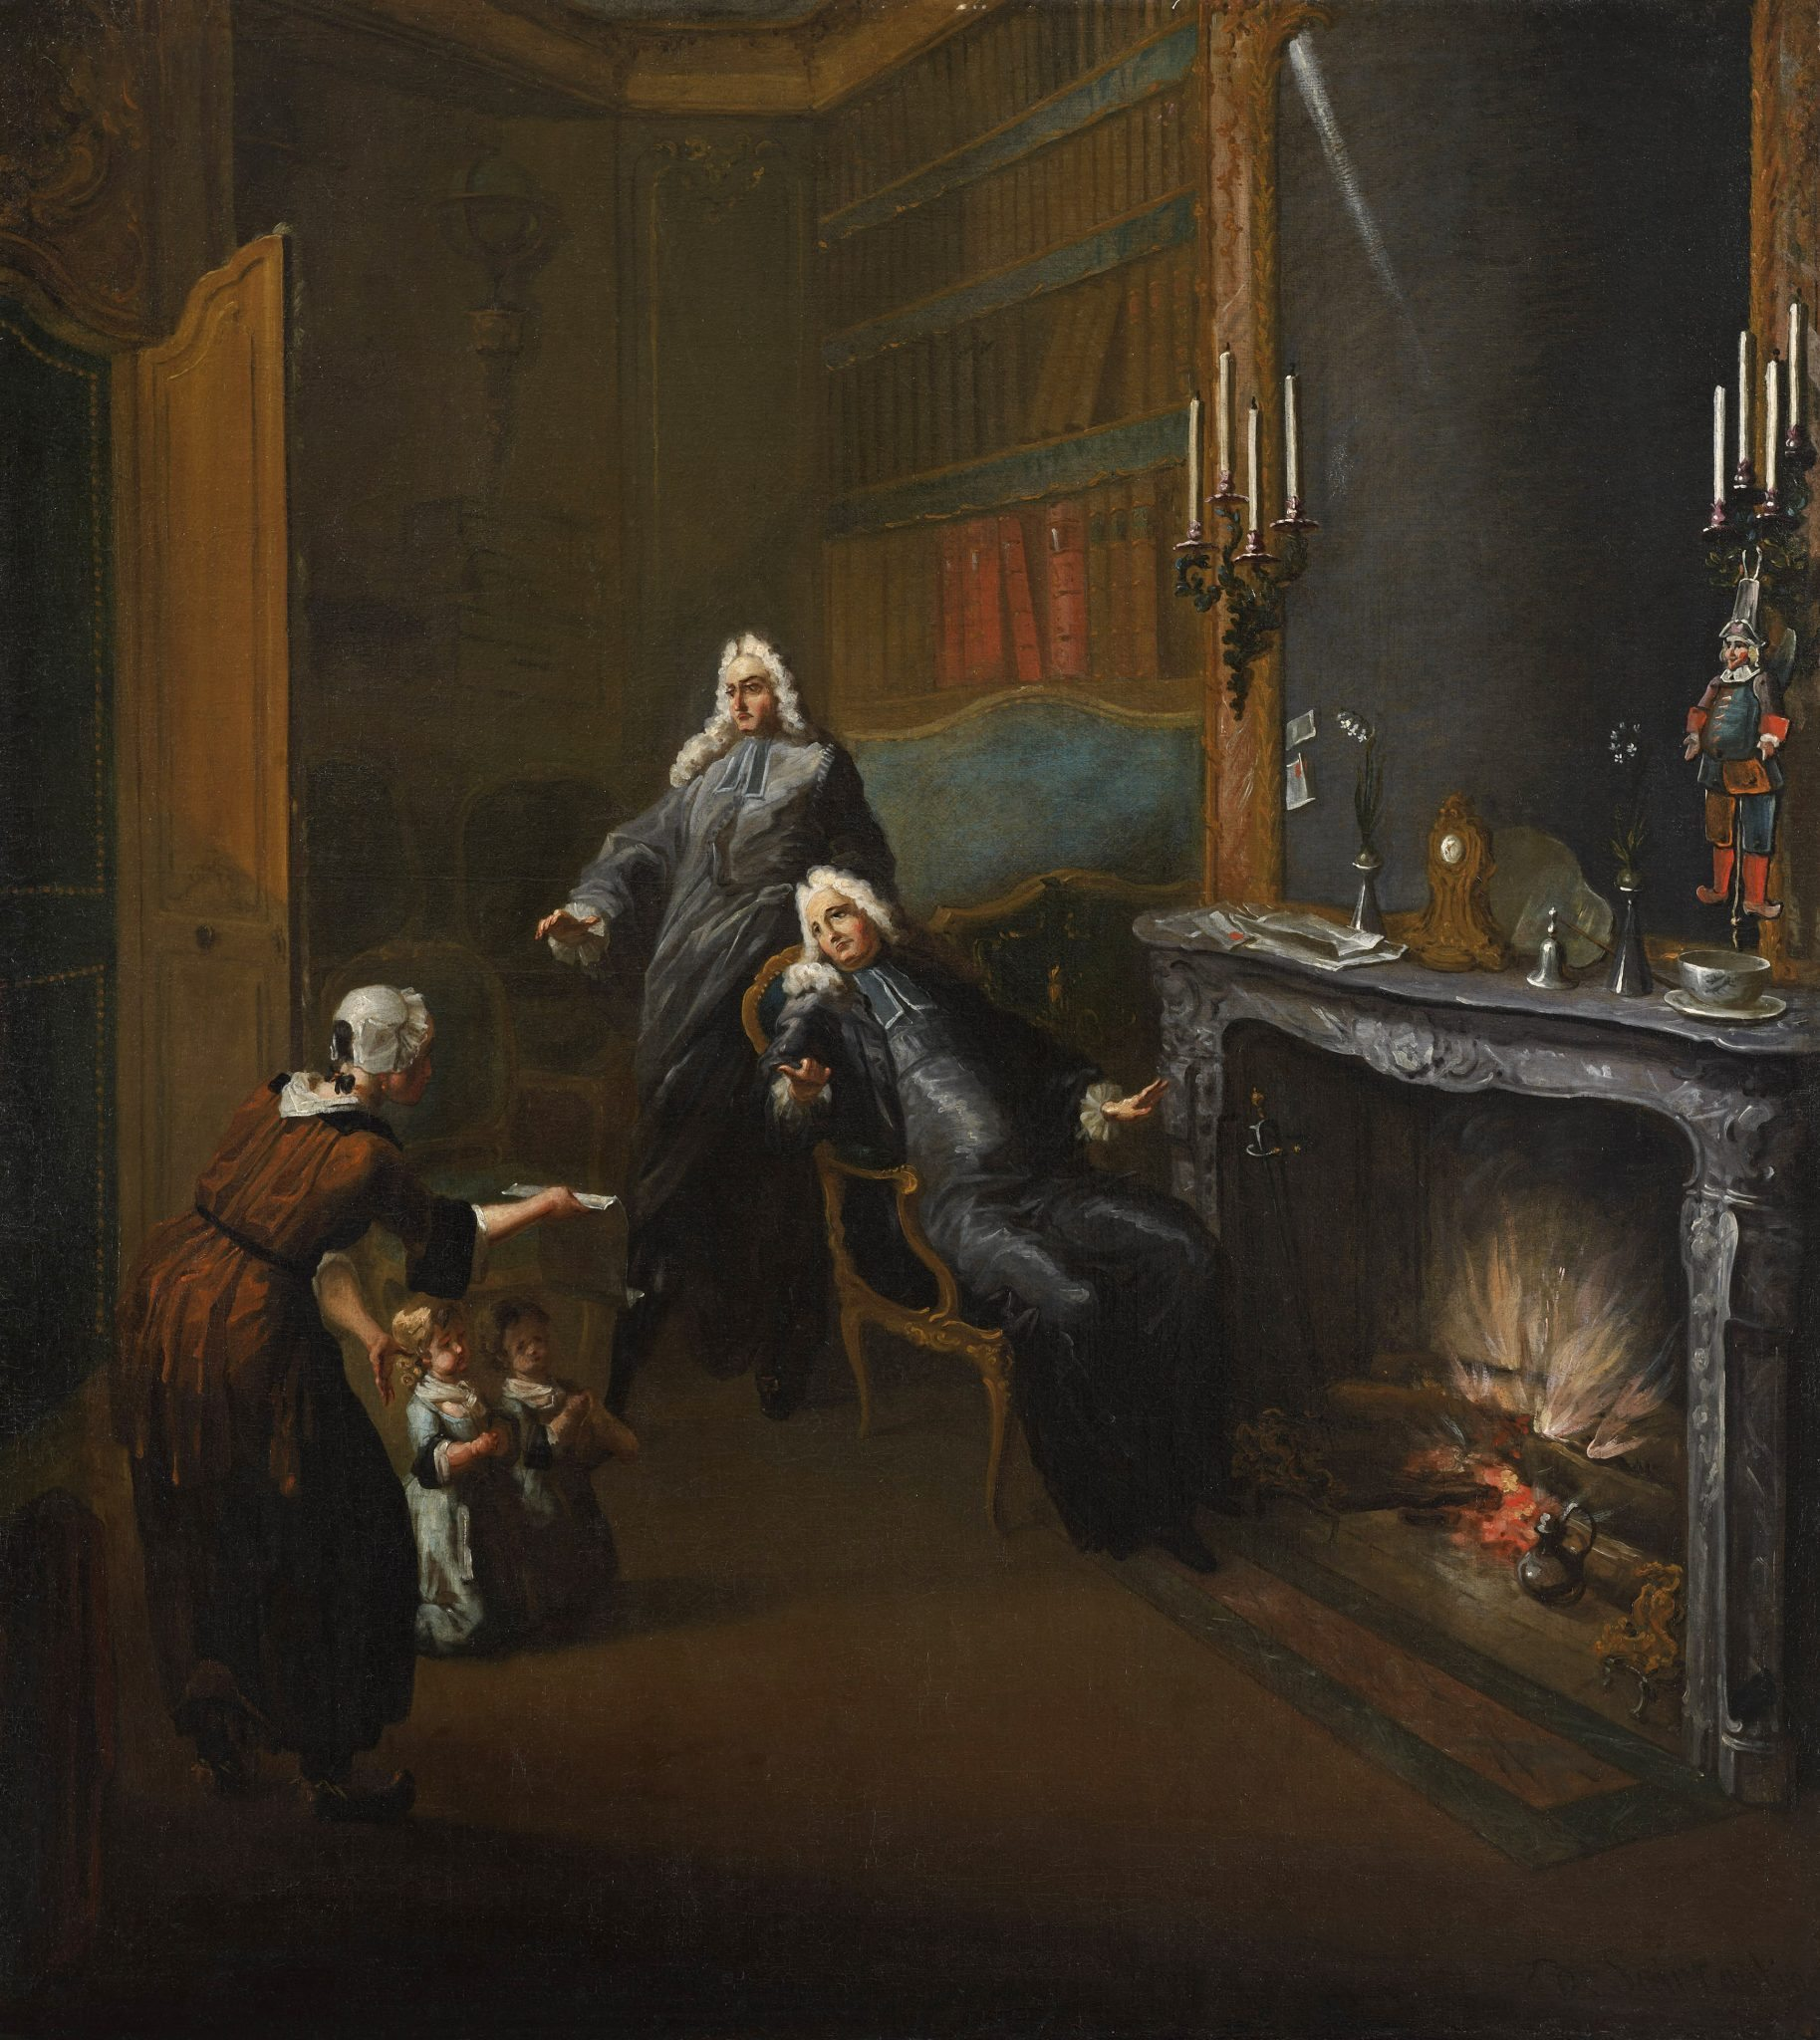 Saint-Aubin, Gabriel de ~ A Lawyer's Chambers: Two Children Presented by a Maid